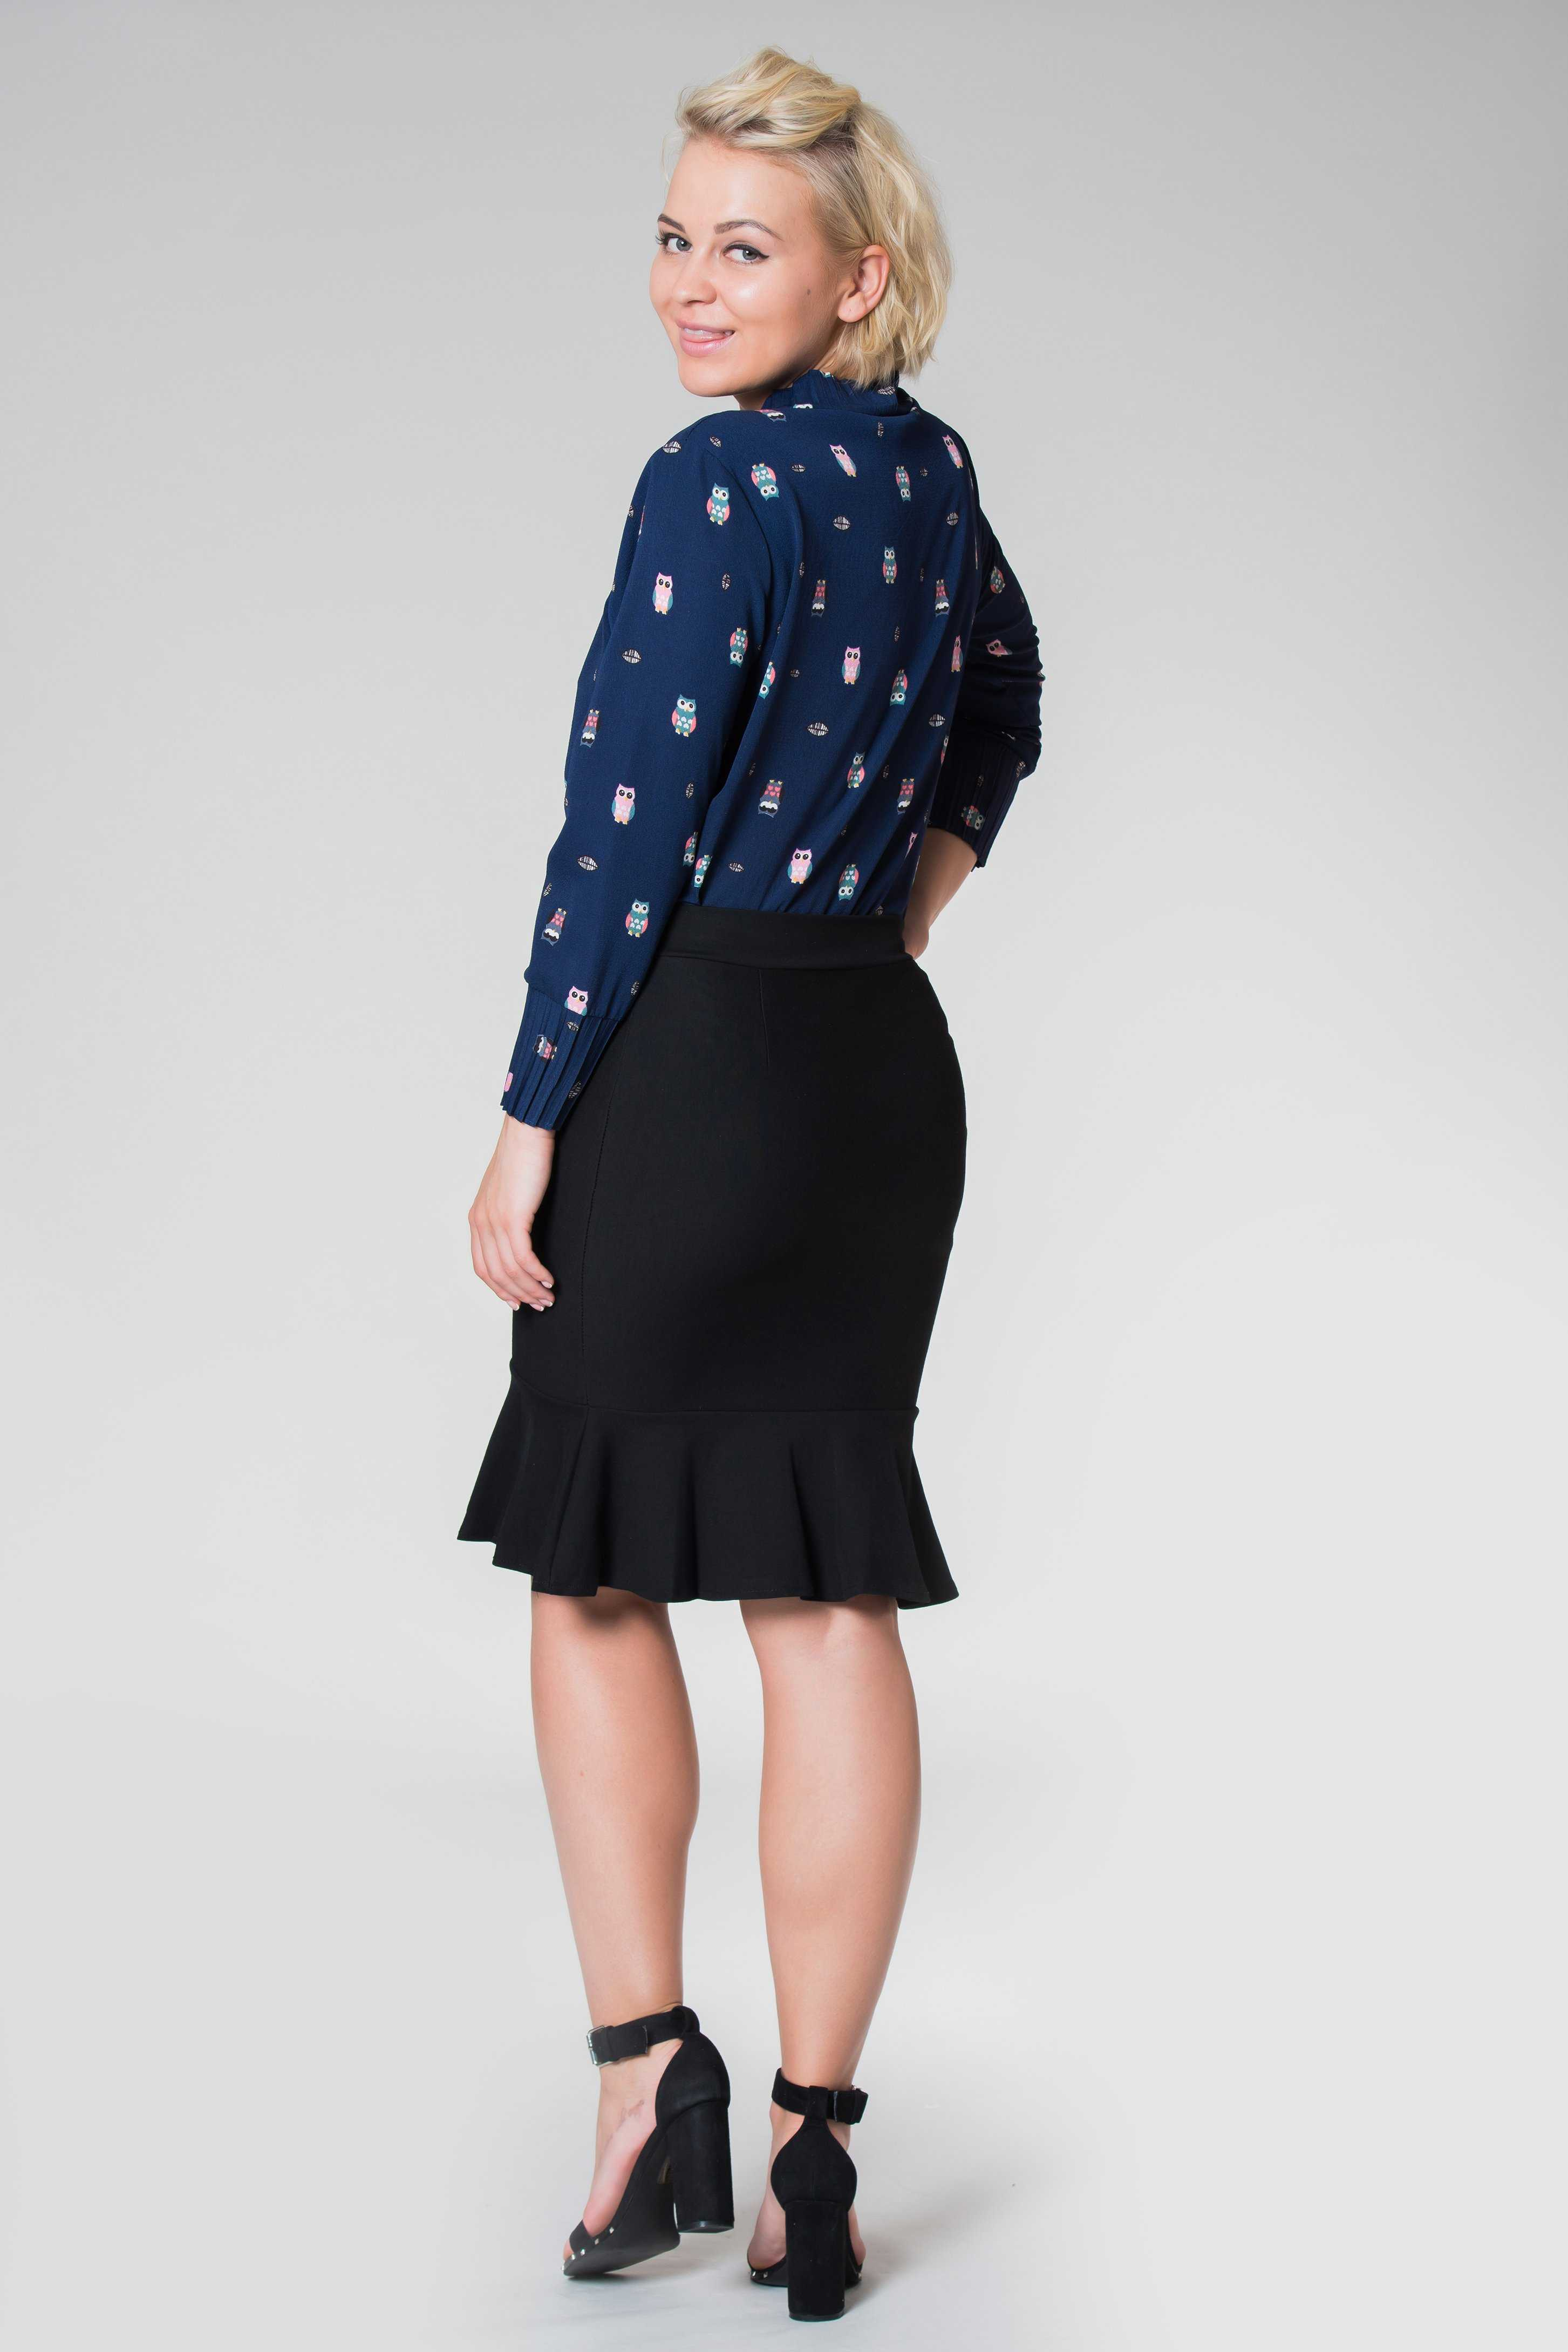 Ruffled Hem Short Skirt Black